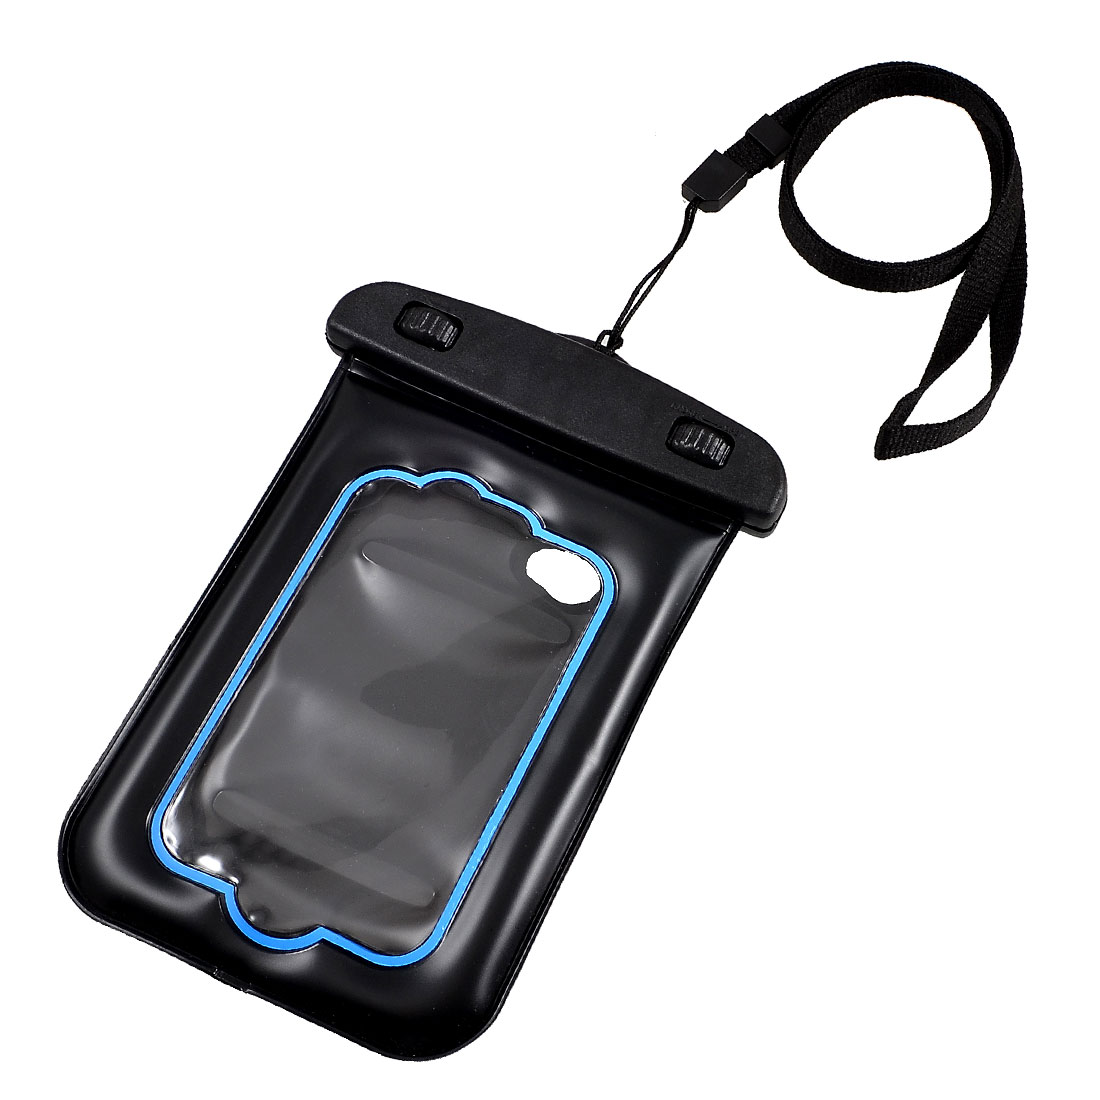 Black Plastic Water Resistant Bag Pouch + Neck Strap + Wrist Belt for Phone